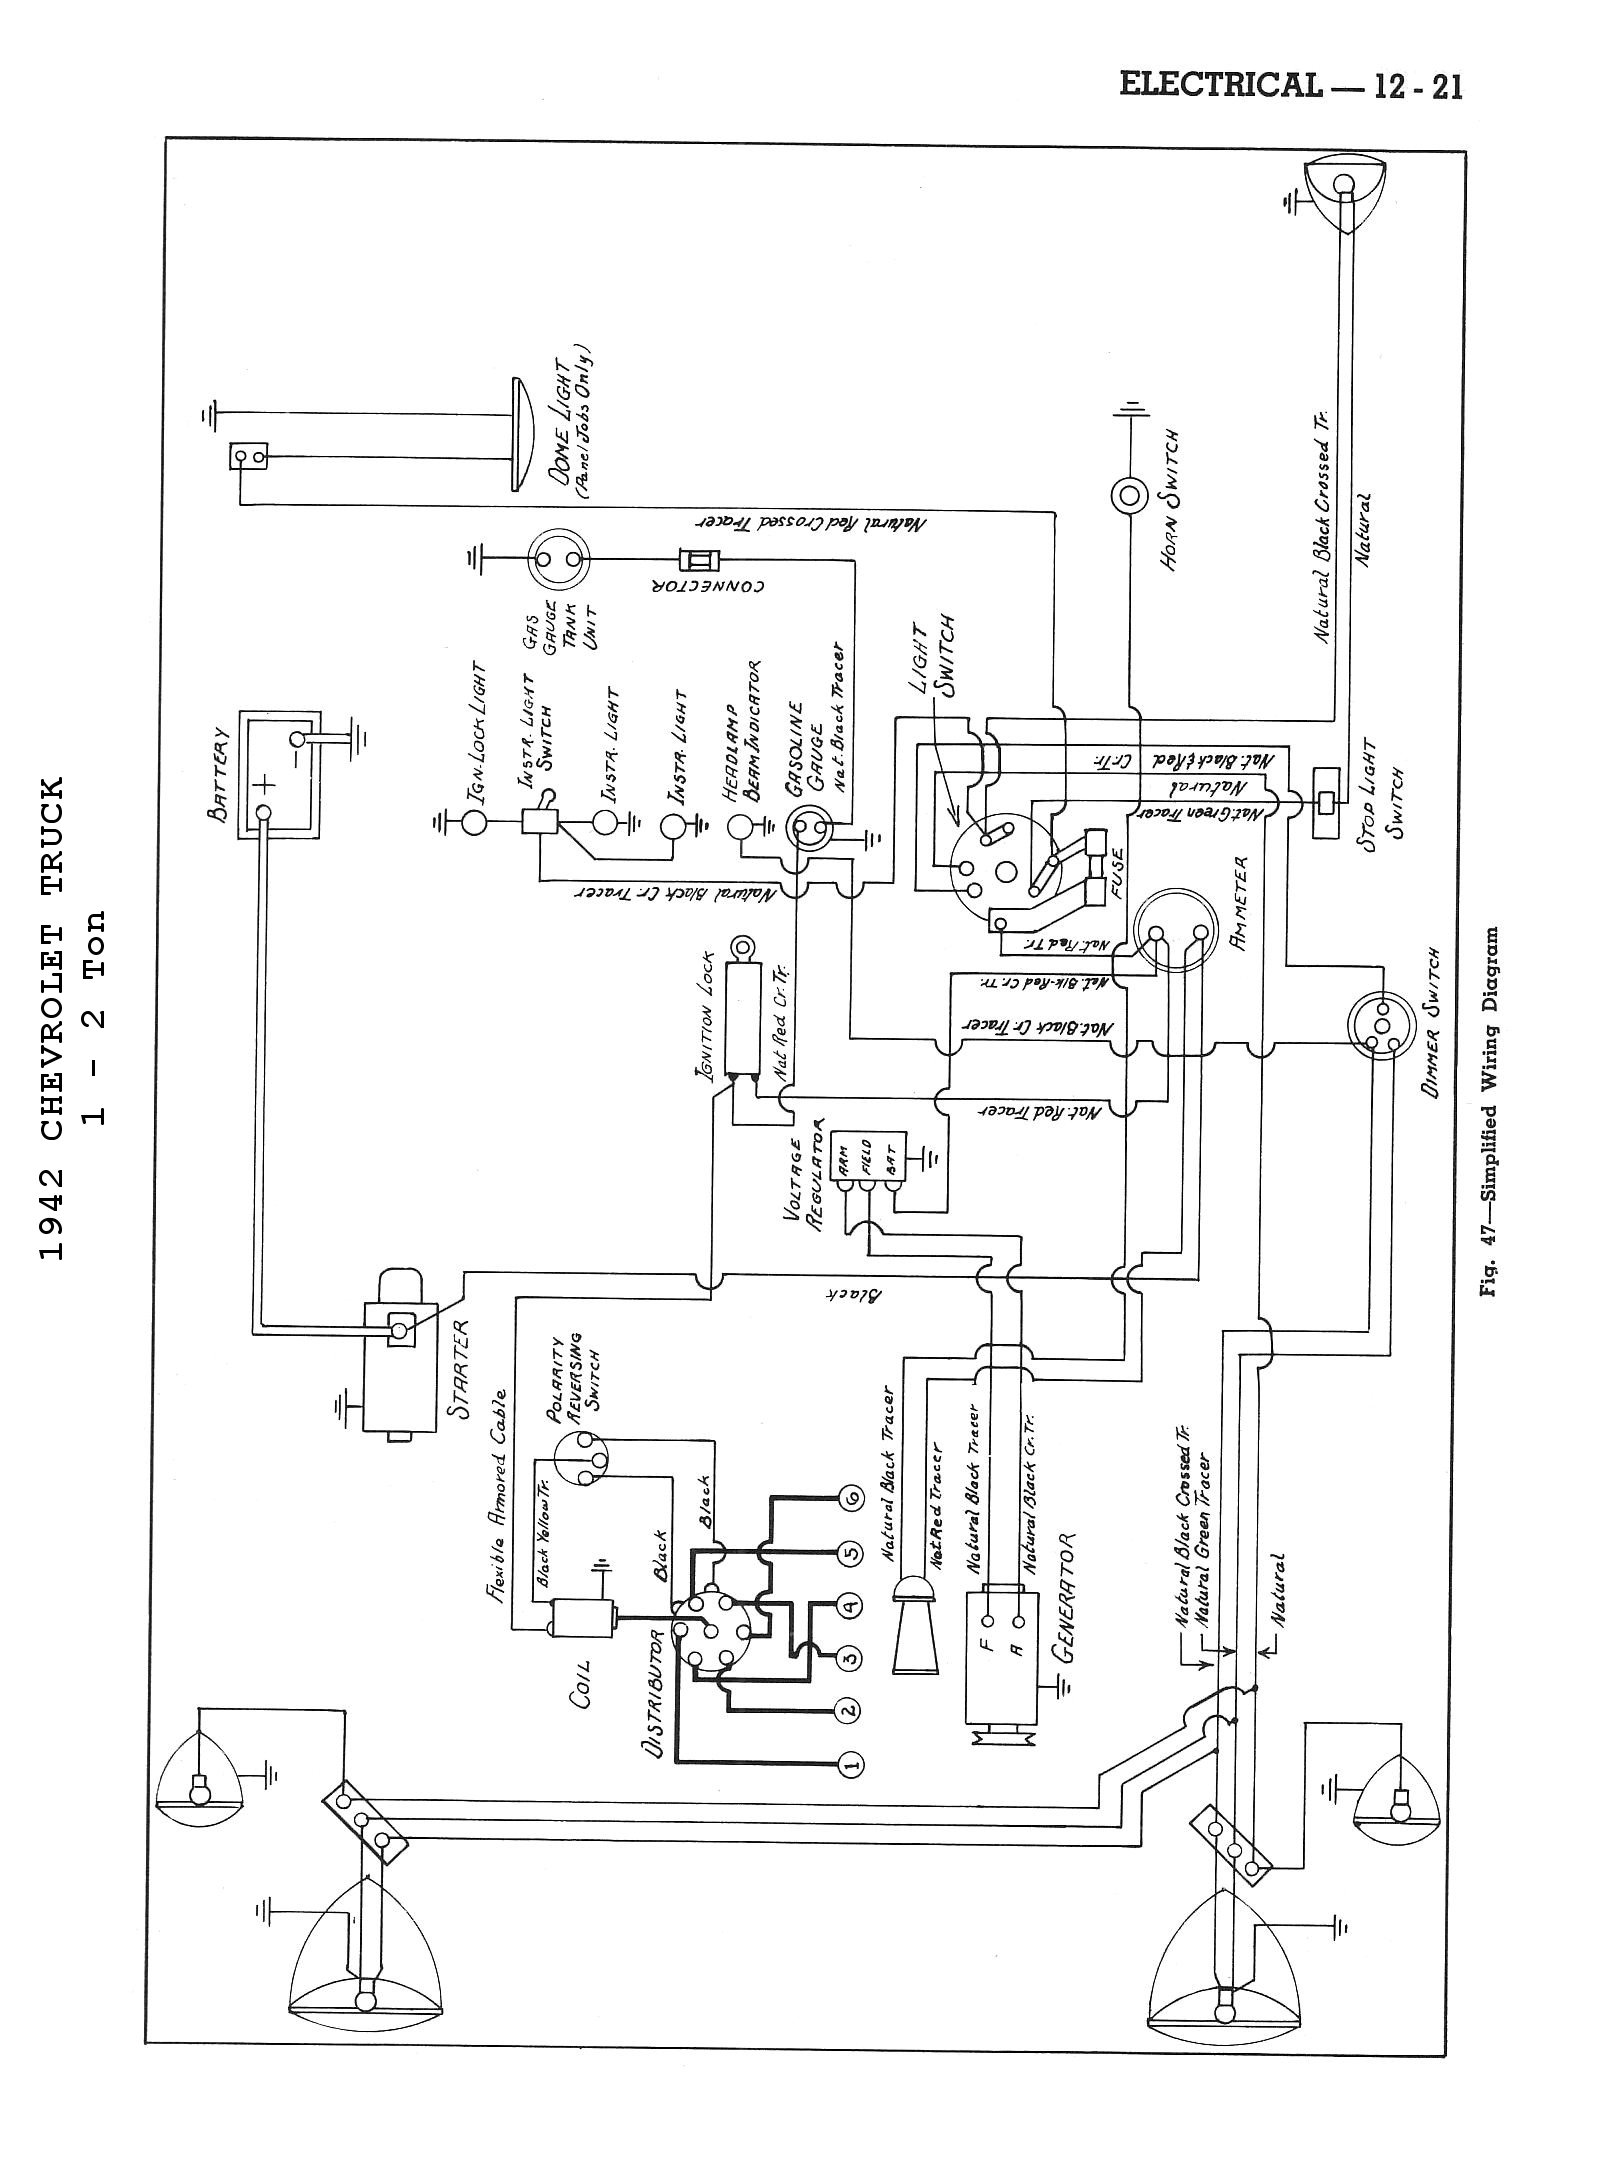 42cm4x2t1221 chevy wiring diagrams  at fashall.co